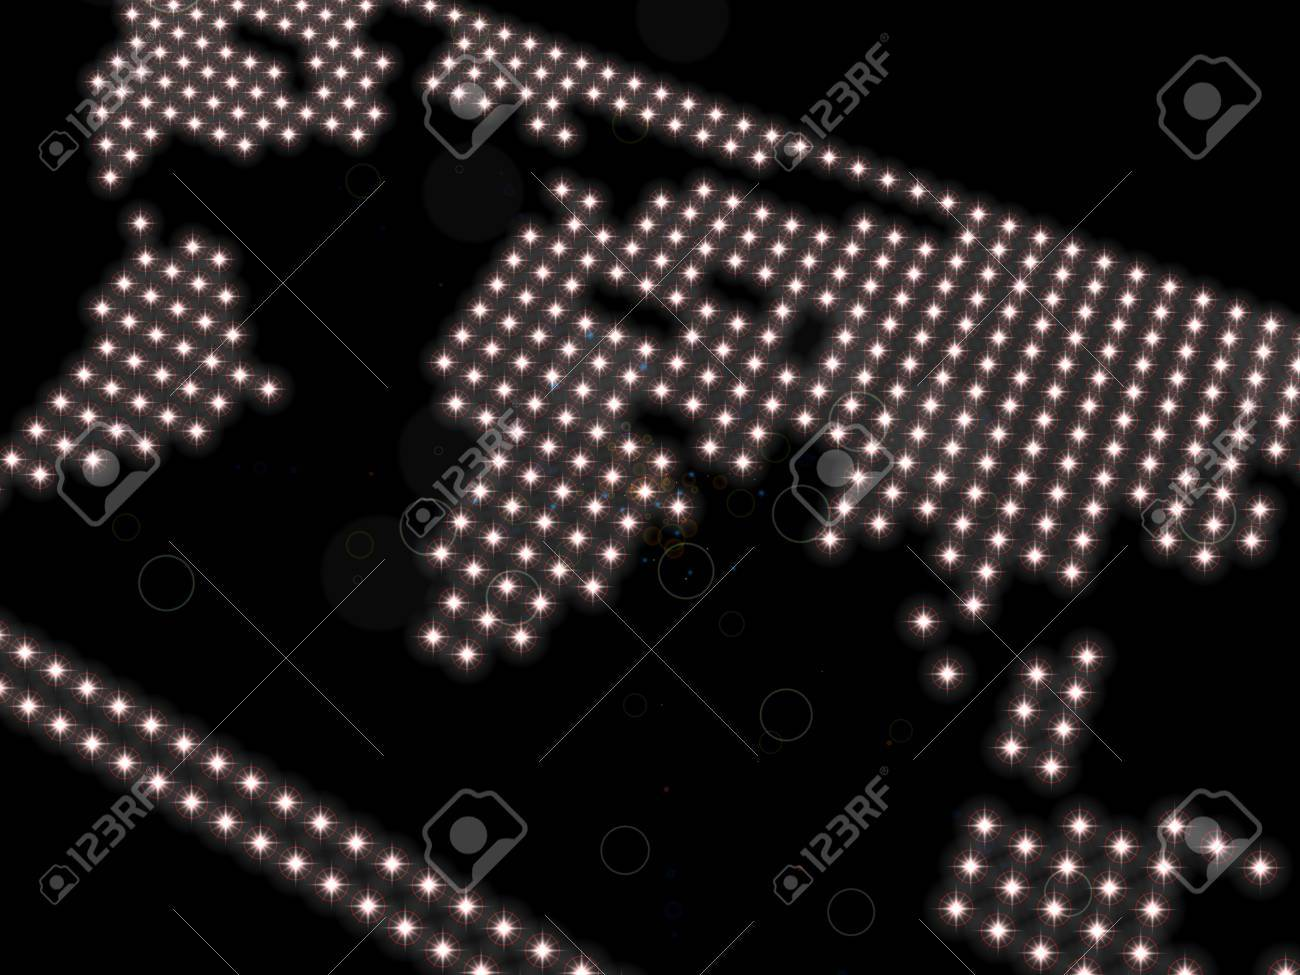 Rough representation of the world map composed of spotlights on a rough representation of the world map composed of spotlights on a black background gumiabroncs Images